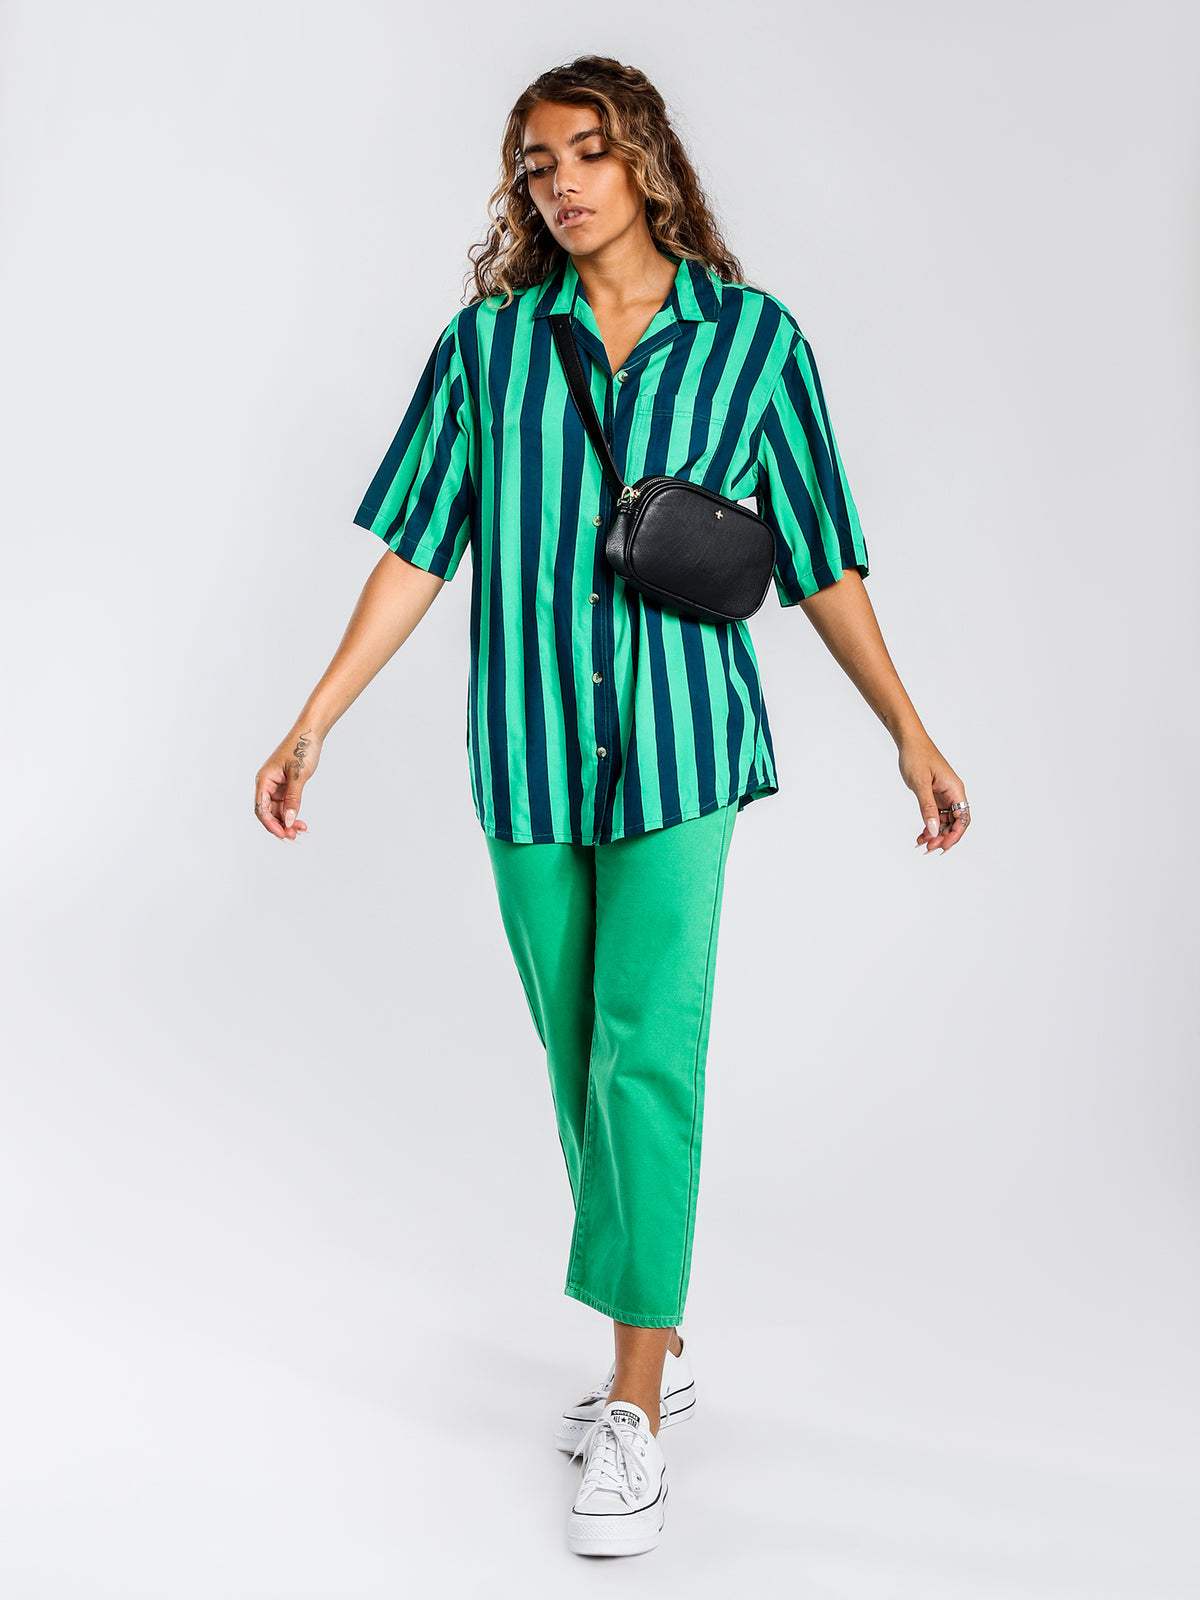 Hawaiian Short Sleeve Shirt in Green & Blue Stripe